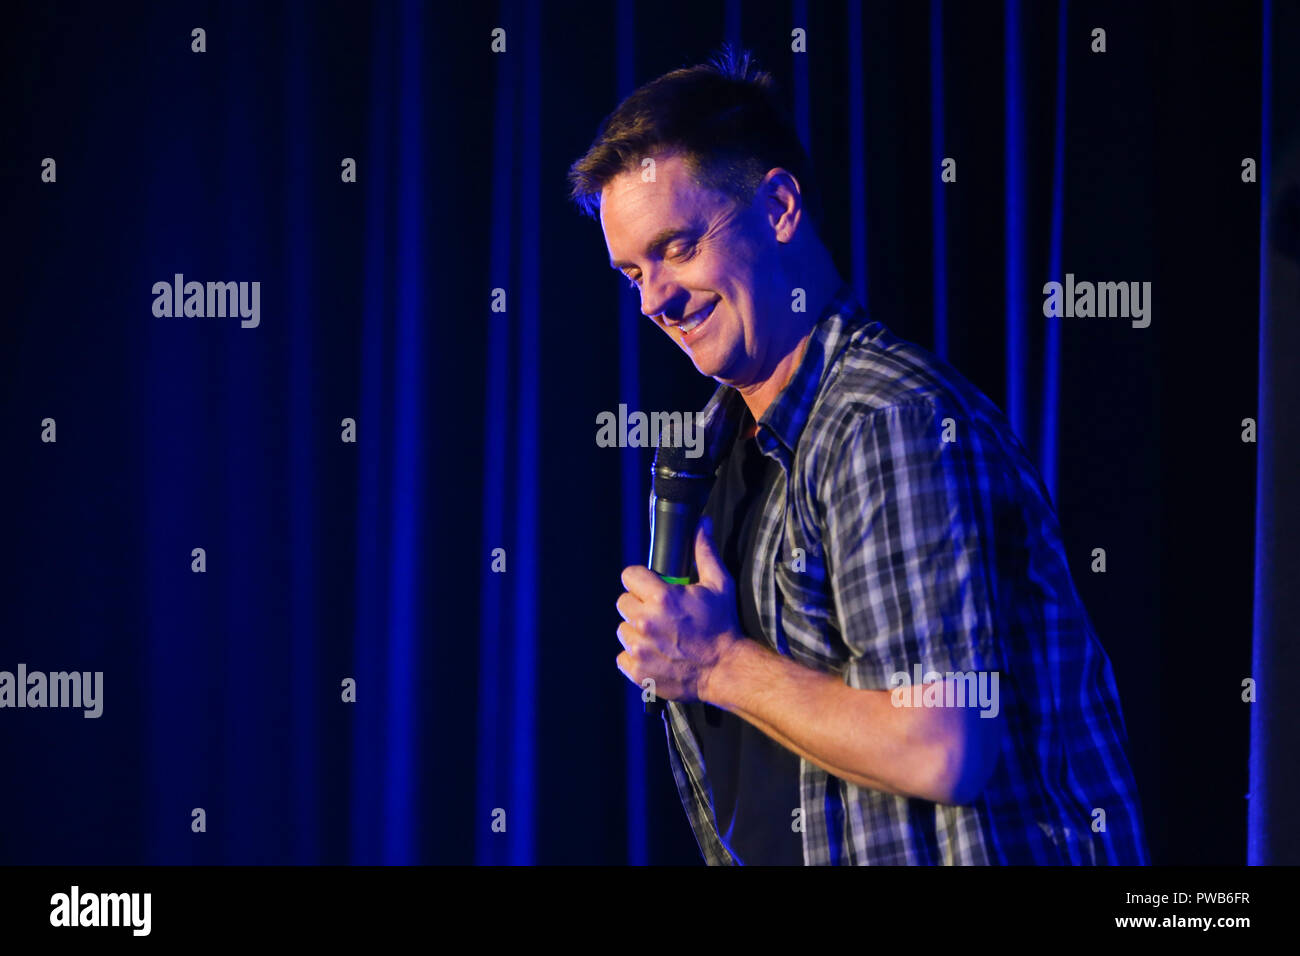 Huntington, New York, USA. 13 October 2018. Comedian Jim Breuer performs at the Paramount on October 13, 2018 in Huntington, New York. Credit: Debby Wong/Alamy Live News - Stock Image